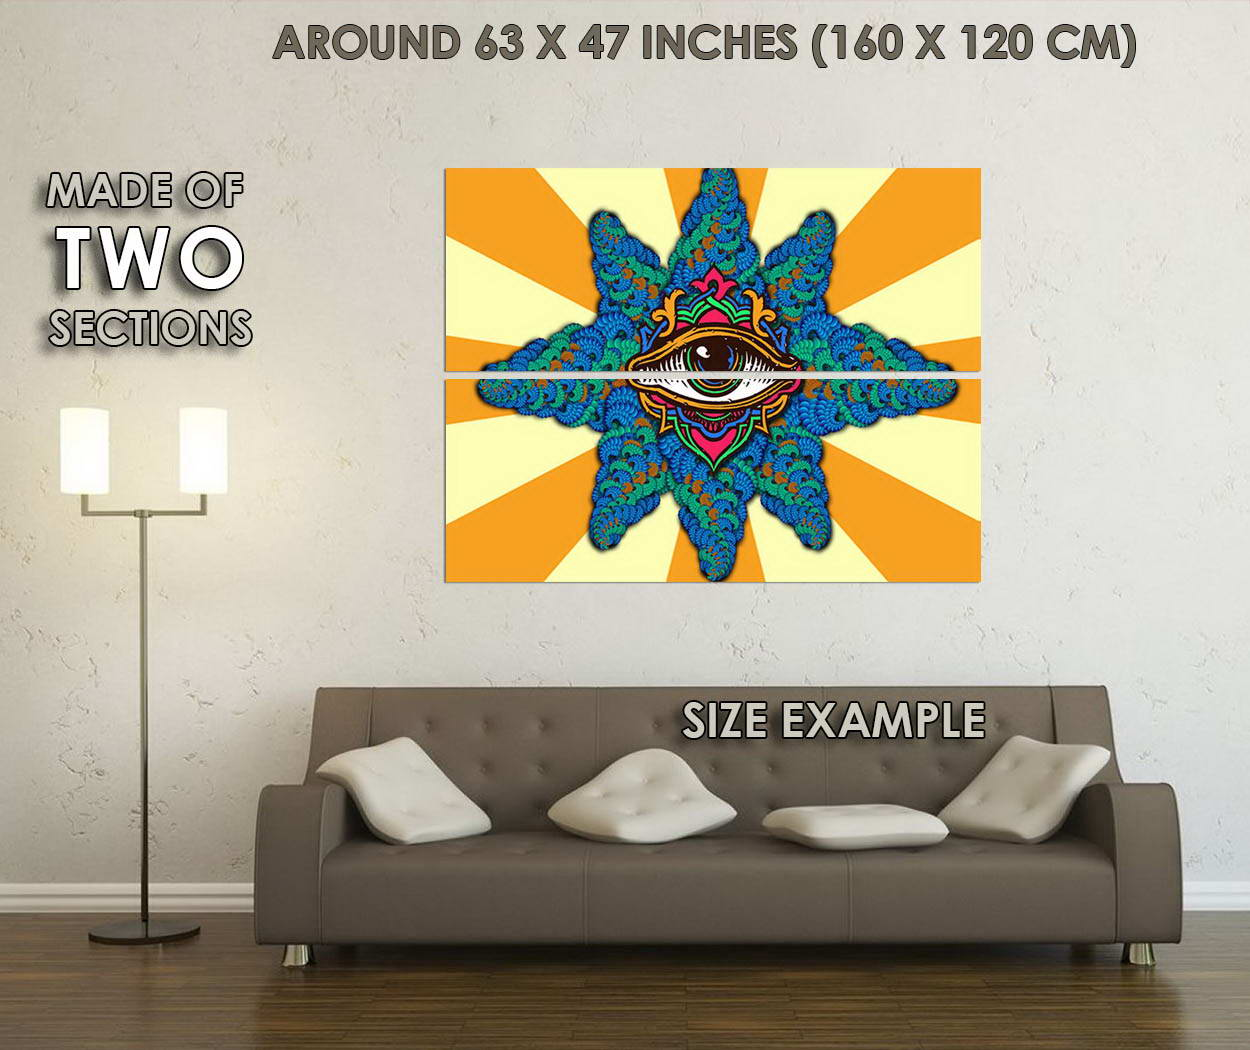 10740-Psychedelic-Trippy-Abstract-Art-LAMINATED-POSTER-CA thumbnail 6